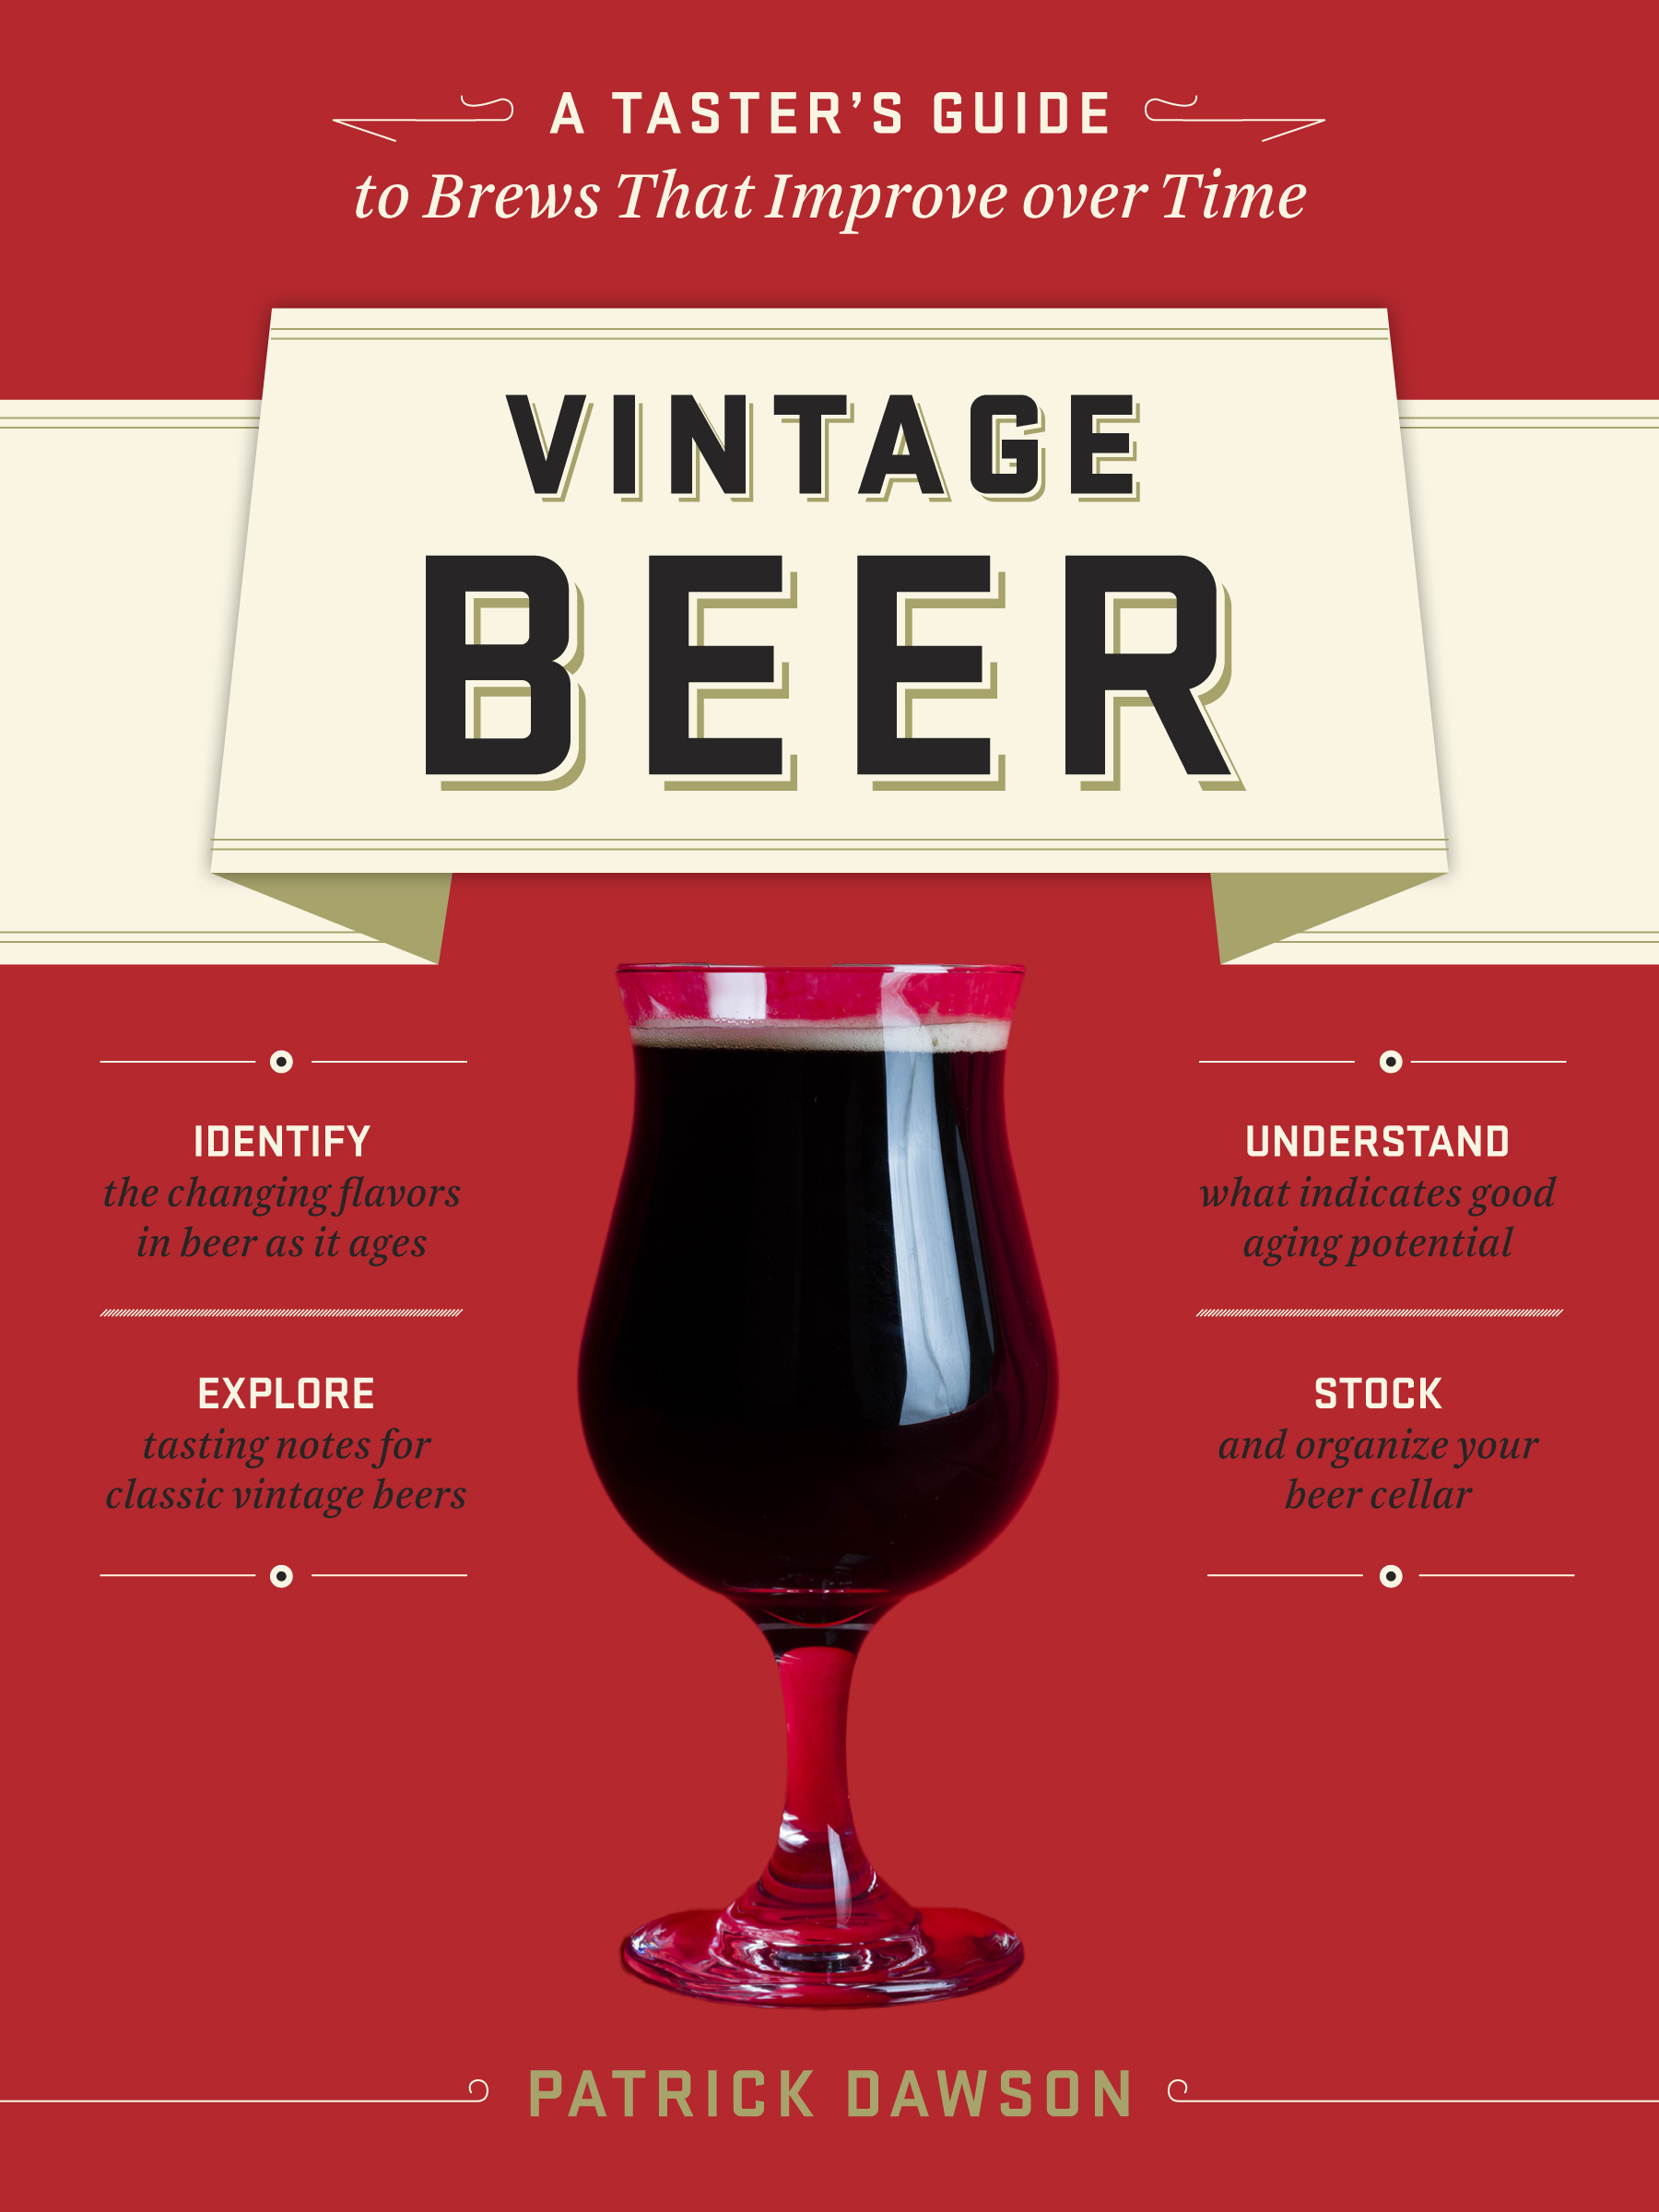 Vintage Beer A Taster's Guide to Brews That Improve over Time - Patrick Dawson